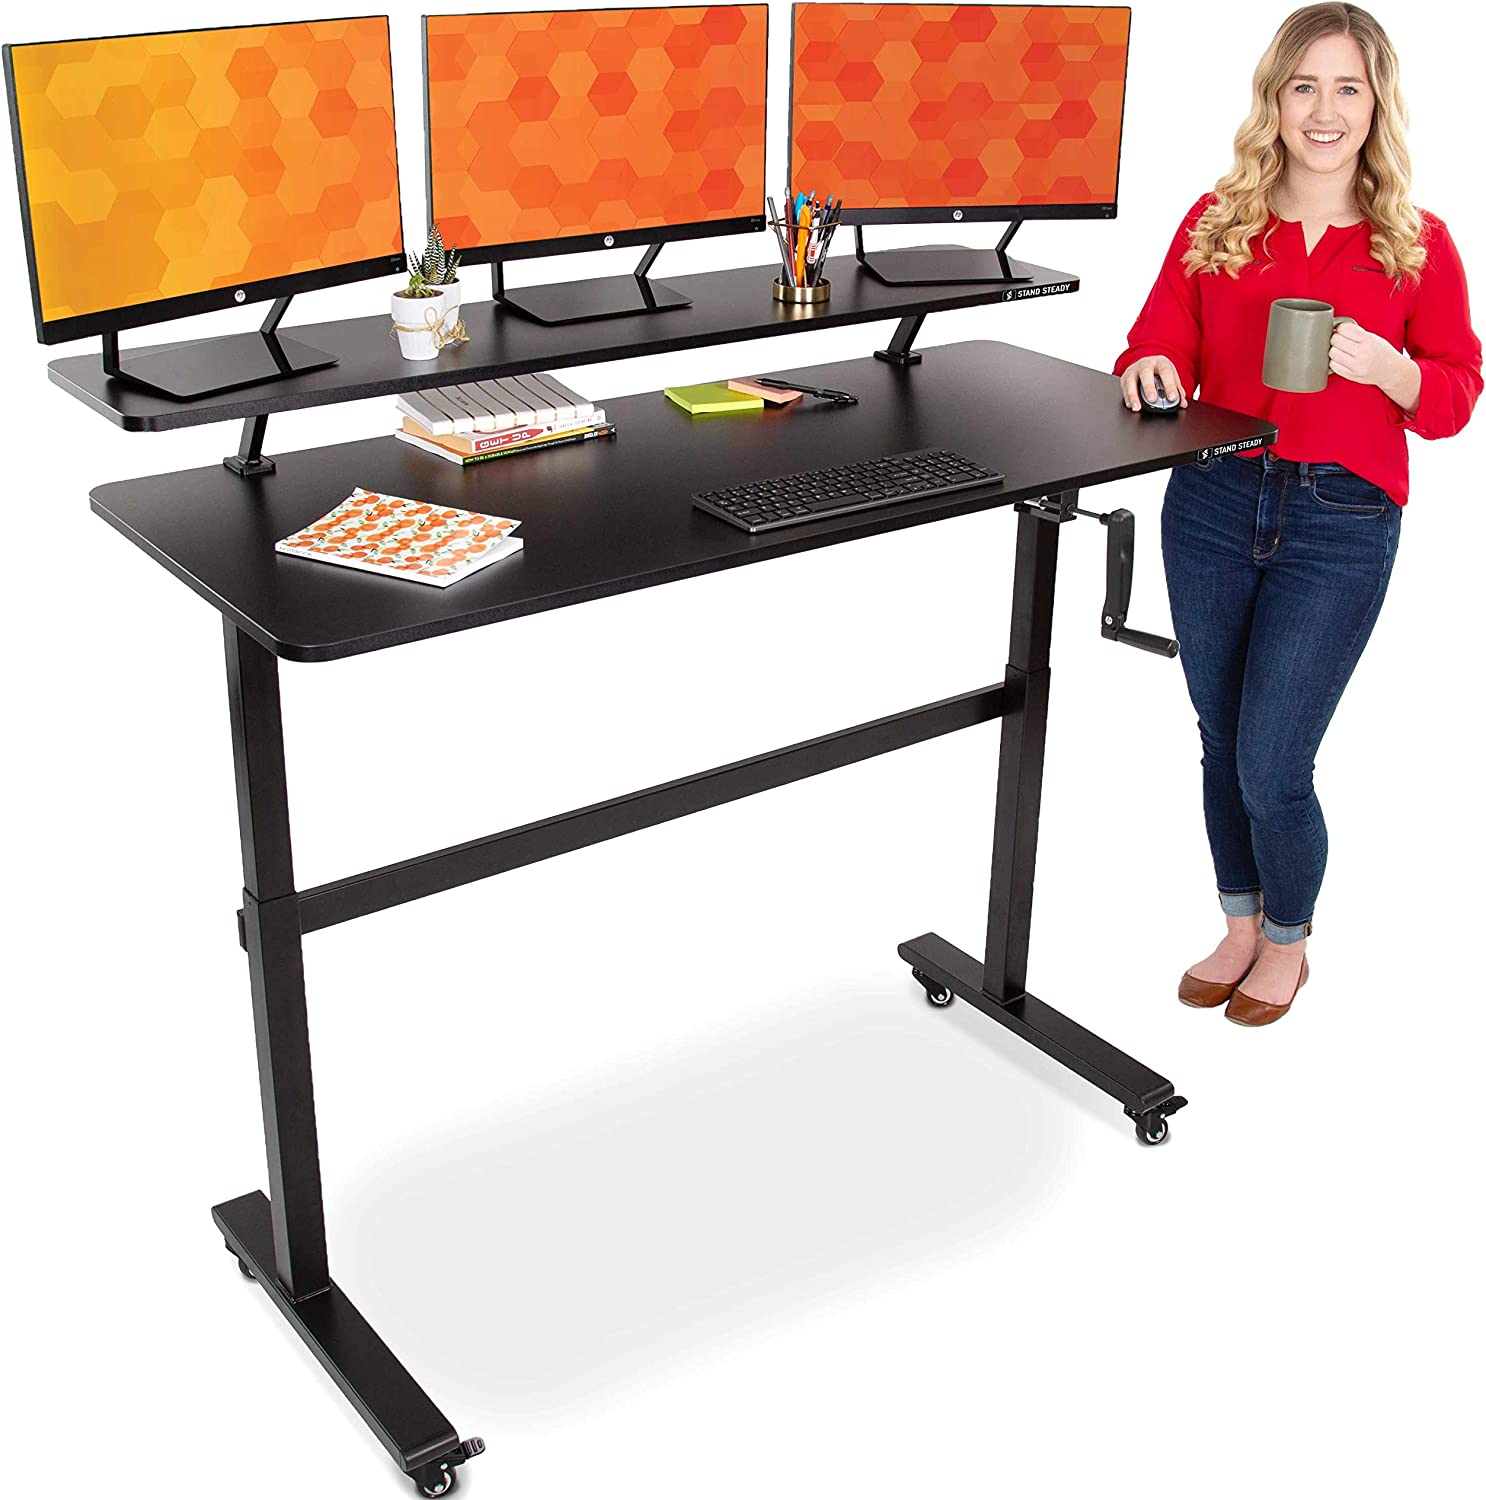 Stand Steady Tranzendesk   55 Inch Standing Desk with Clamp On Shelf & Wheels   Front Crank Manual Height Adjustable Sit to Stand Desk   Attachable Monitor Riser Supports 3 Monitors (55 / Black)